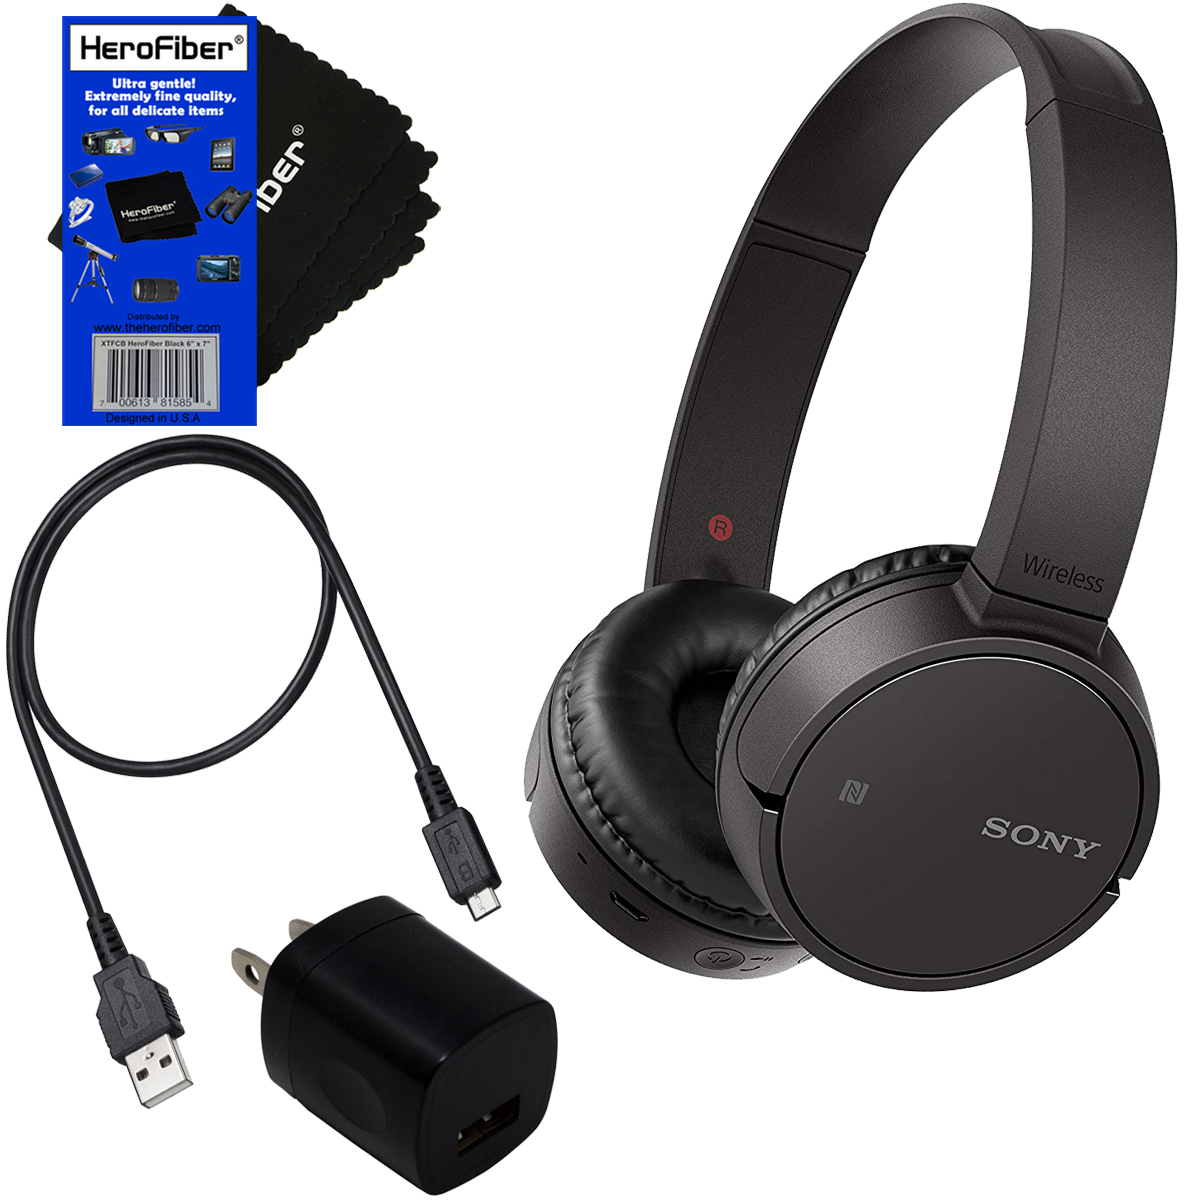 Sony WH CH500 Wireless On Ear Stereo Headphones with Bluetooth & NFC (Black) + USB Cable + Charger Wall Adapter + HeroFiber Ultra Gentle Cleaning